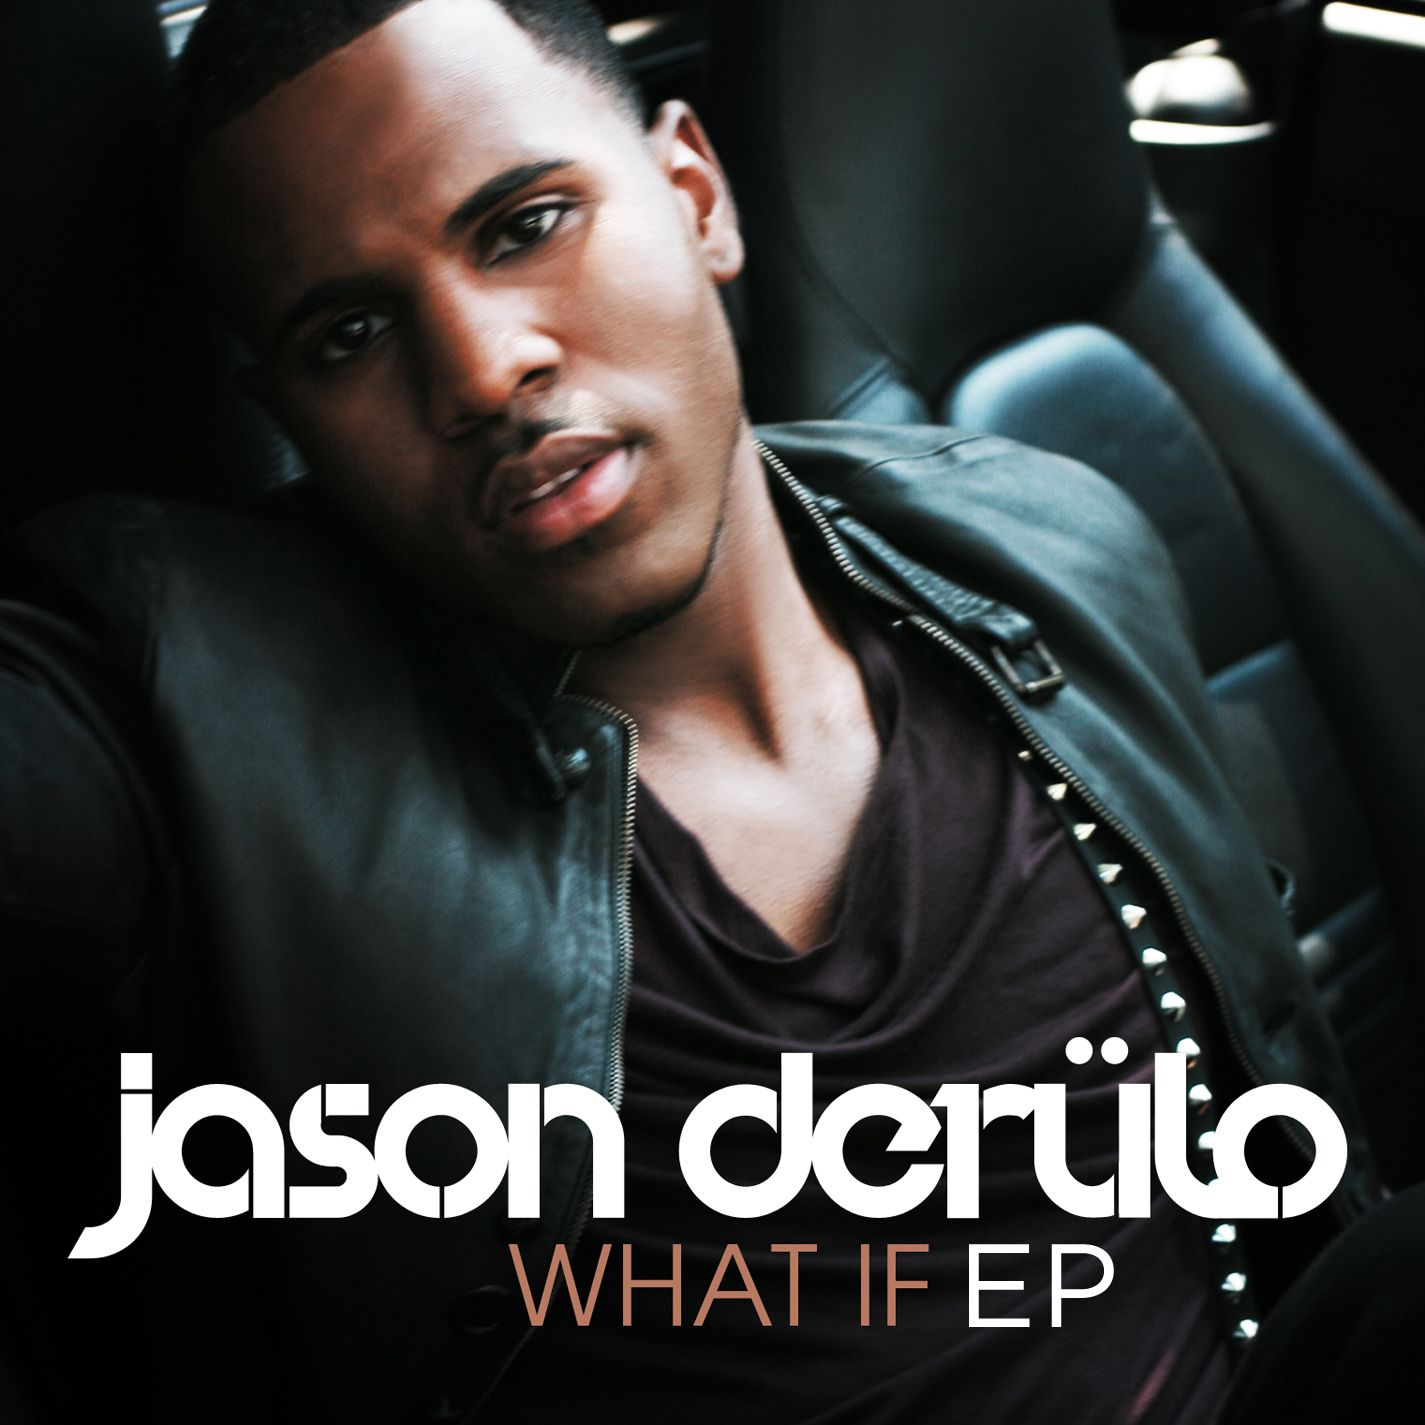 Jason Derulo Radio: Listen to Free Music & Get The Latest